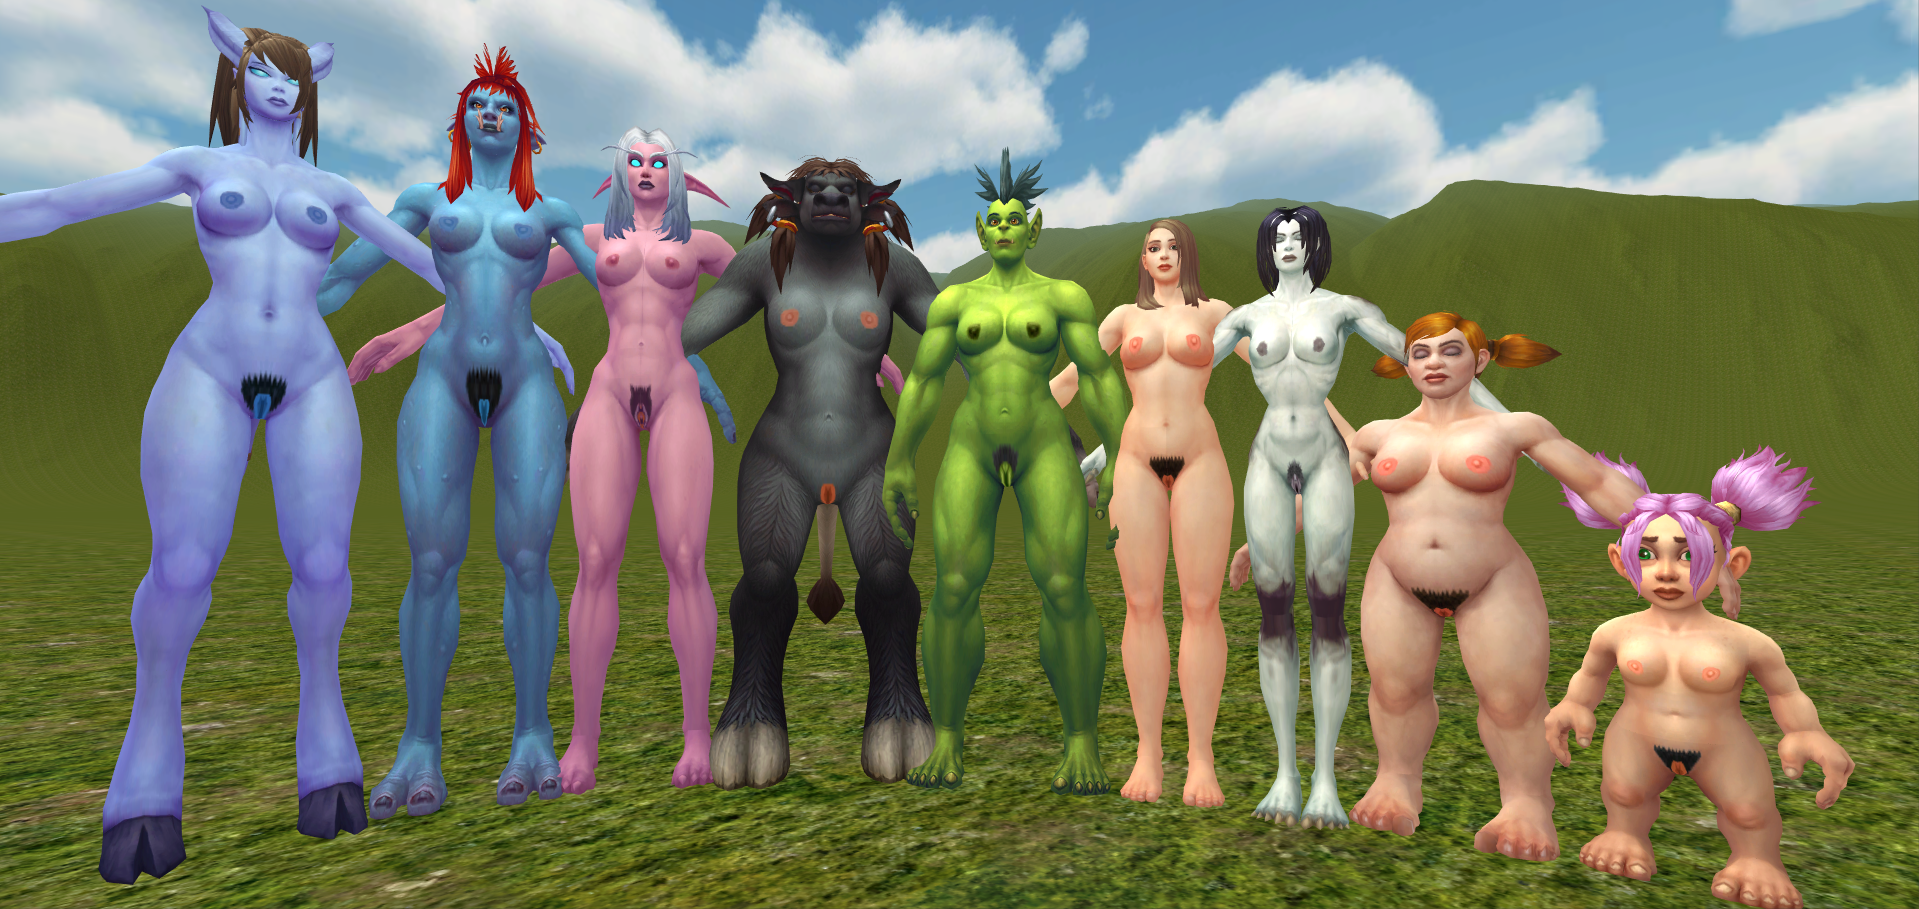 Naked world of warcraft females in the  sexy animation pornstars